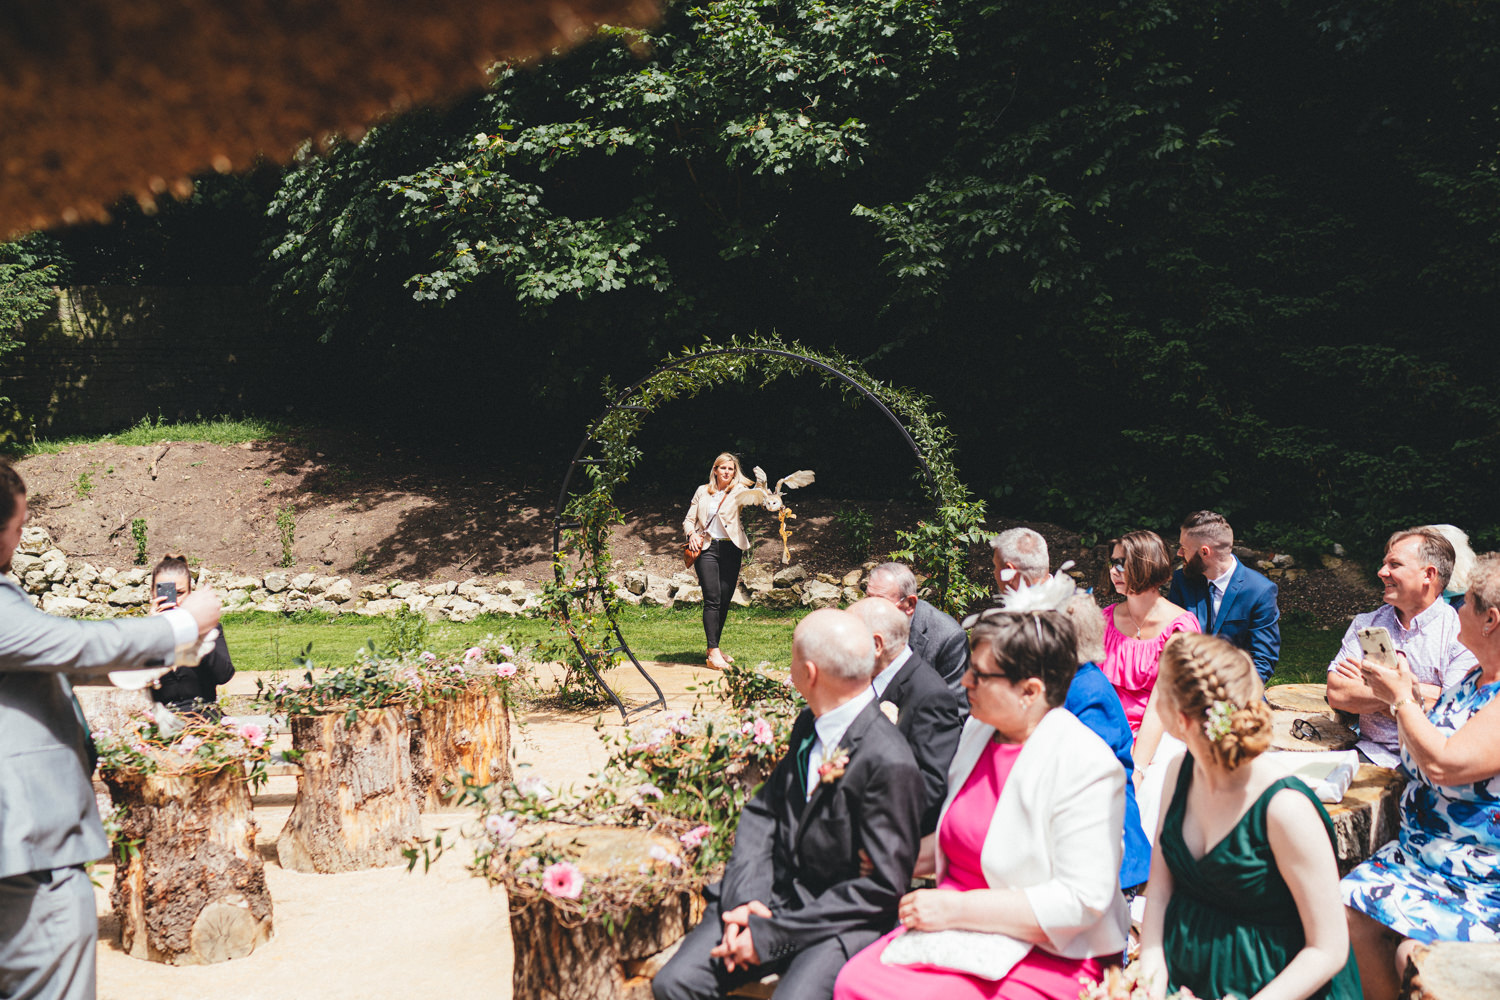 wedding owl, barn owl at wedding ceremony, owl at a wedding ceremony, Quirky Woodland Wedding Photography